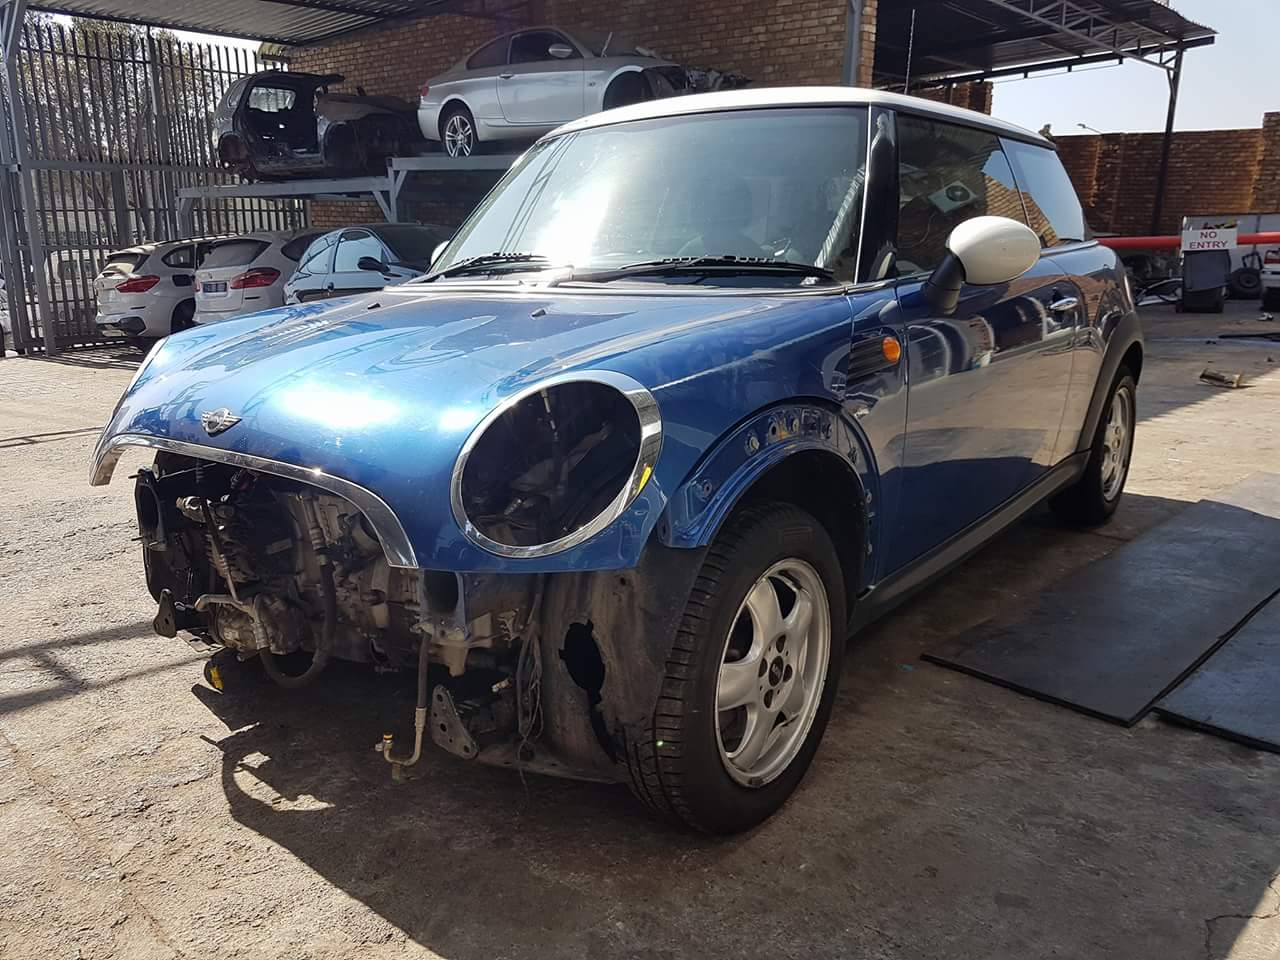 2008 Mini Cooper R56 N12 6 Speed Manual Pre-Face Stripping For